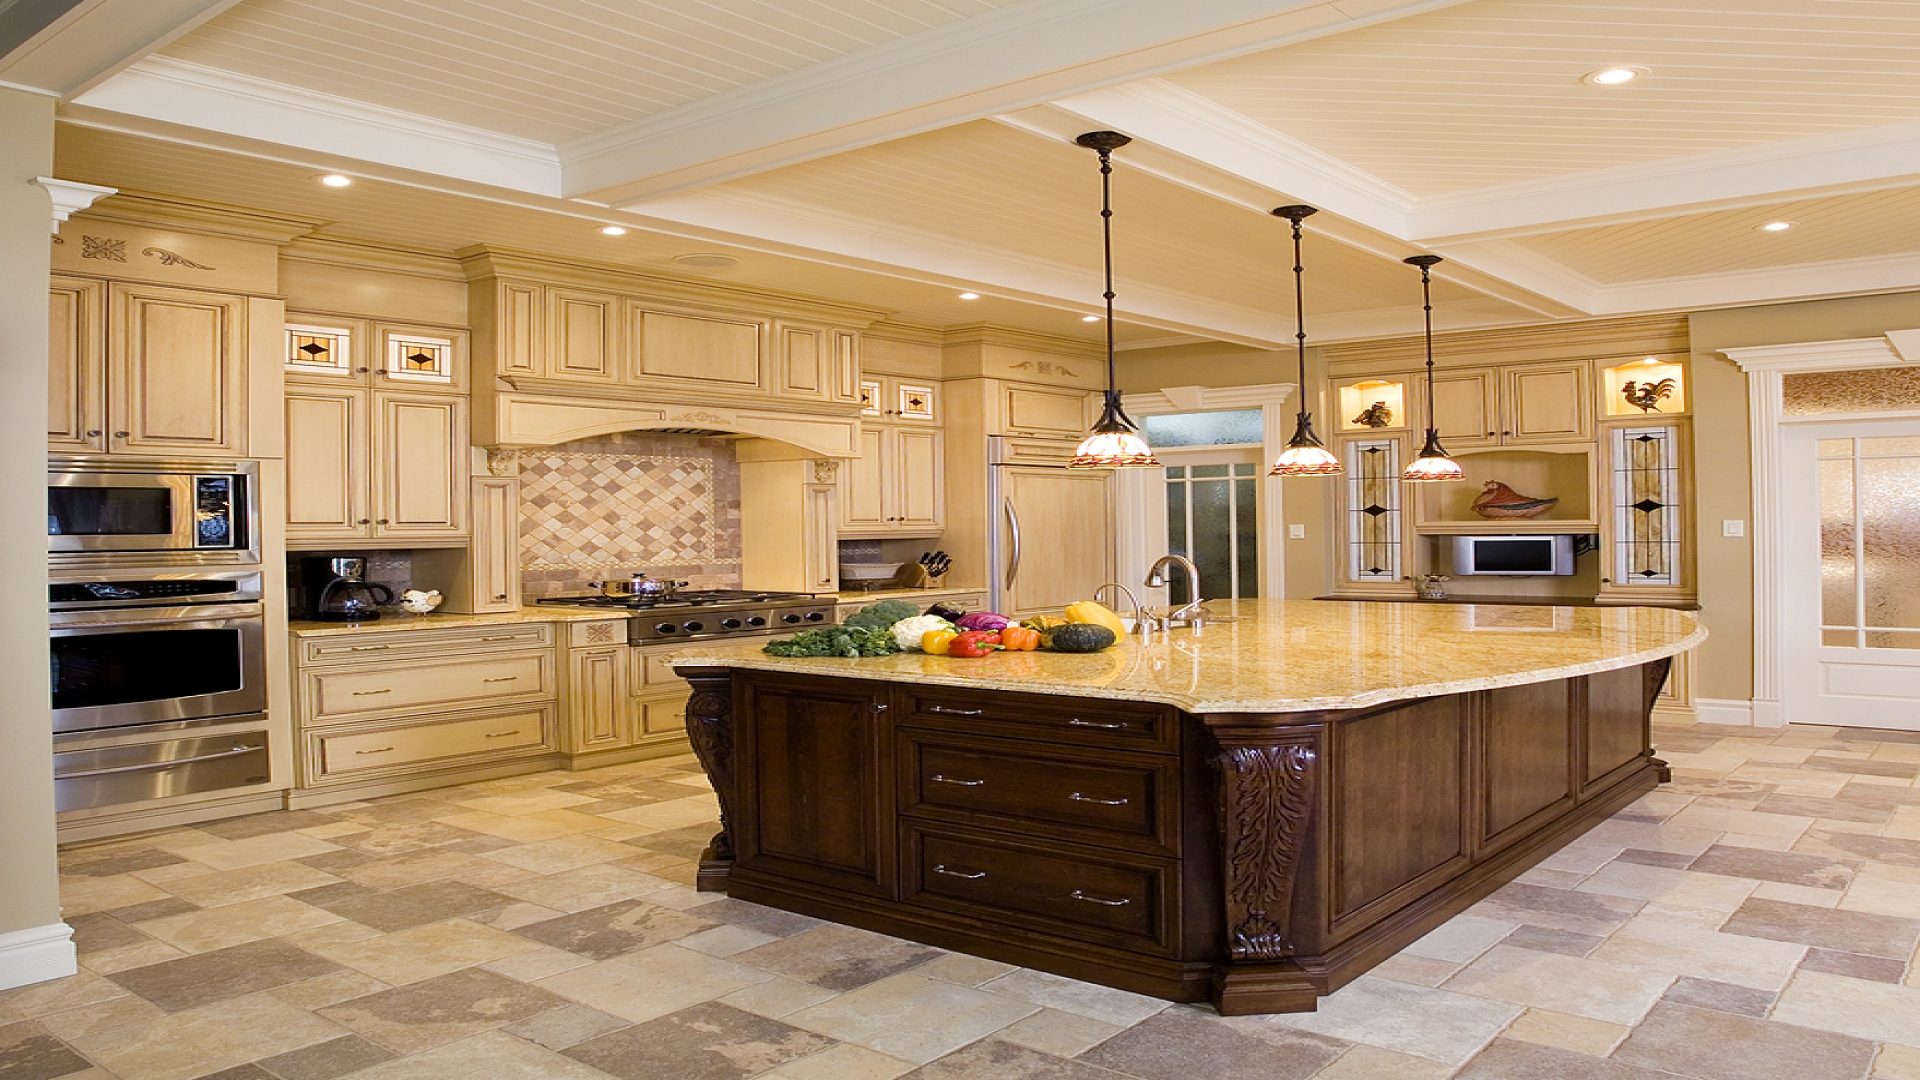 Kitchen remodeling ideas pictures photos - Remodeling kitchen ideas ...